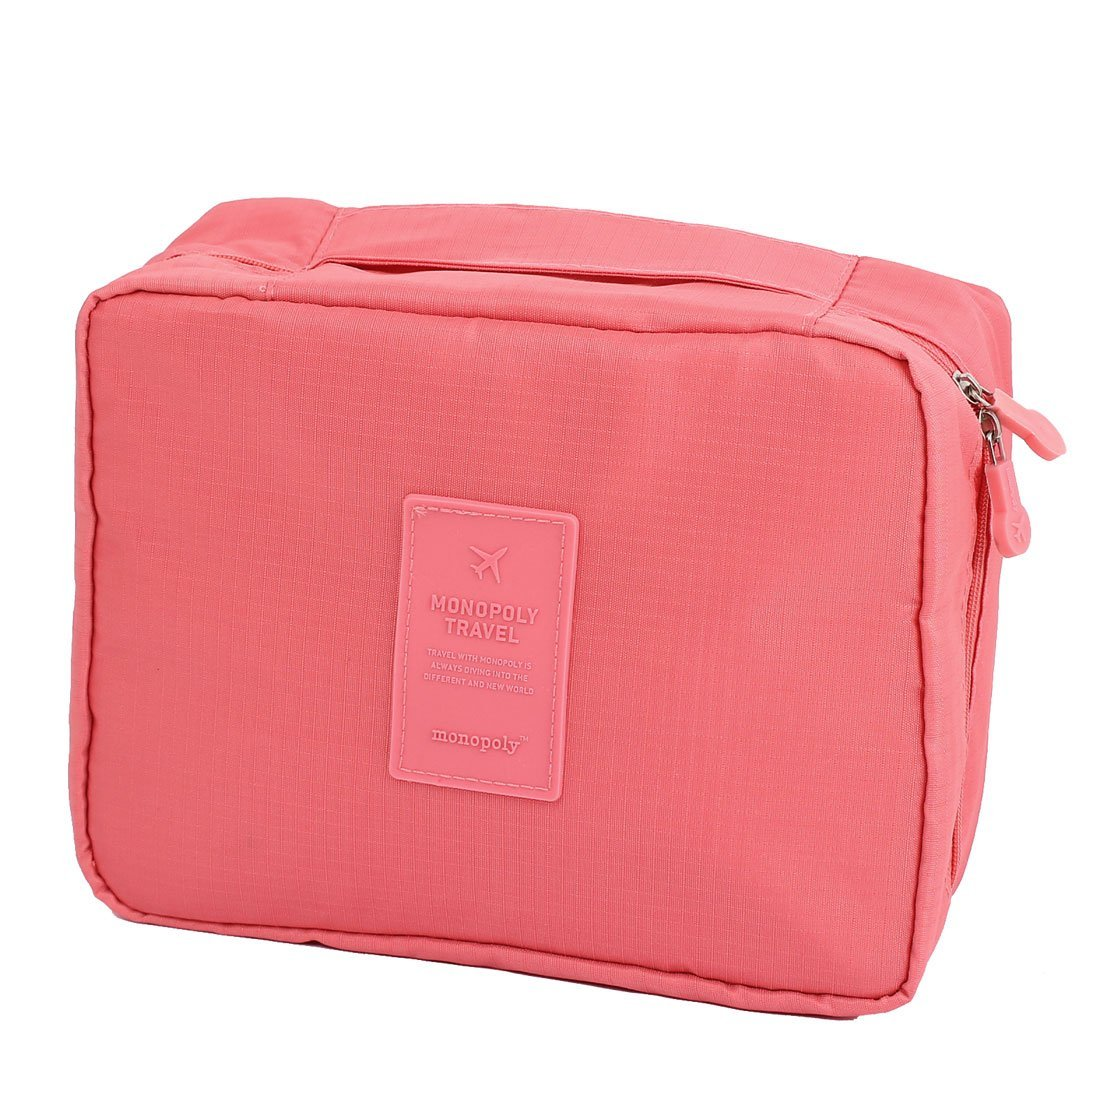 Travel Toiletry Toiletries Cosmetic Shaving Wash Bag Storage Case Pink